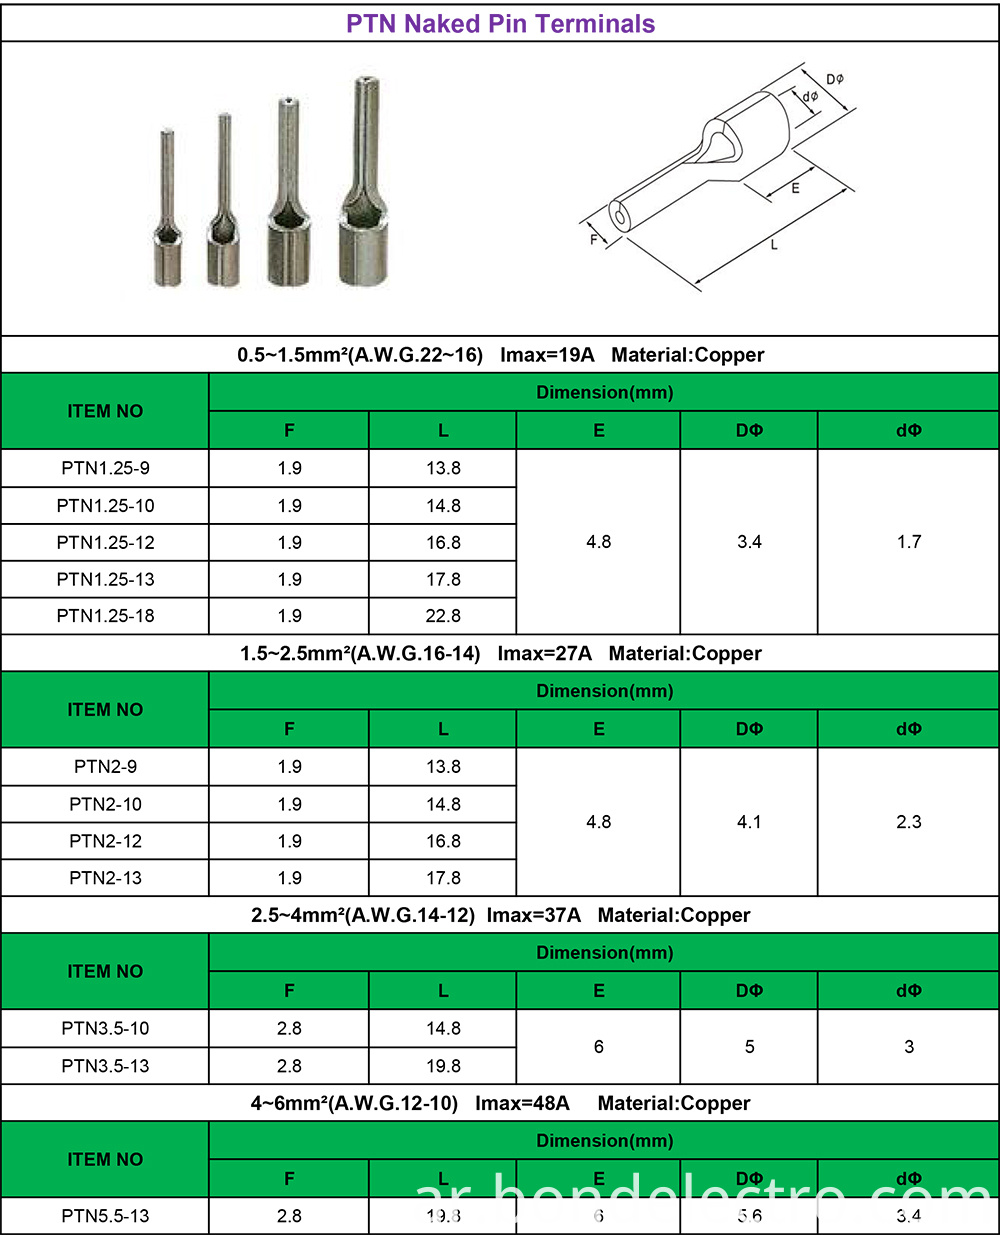 PTN Naked Pin Type Terminals